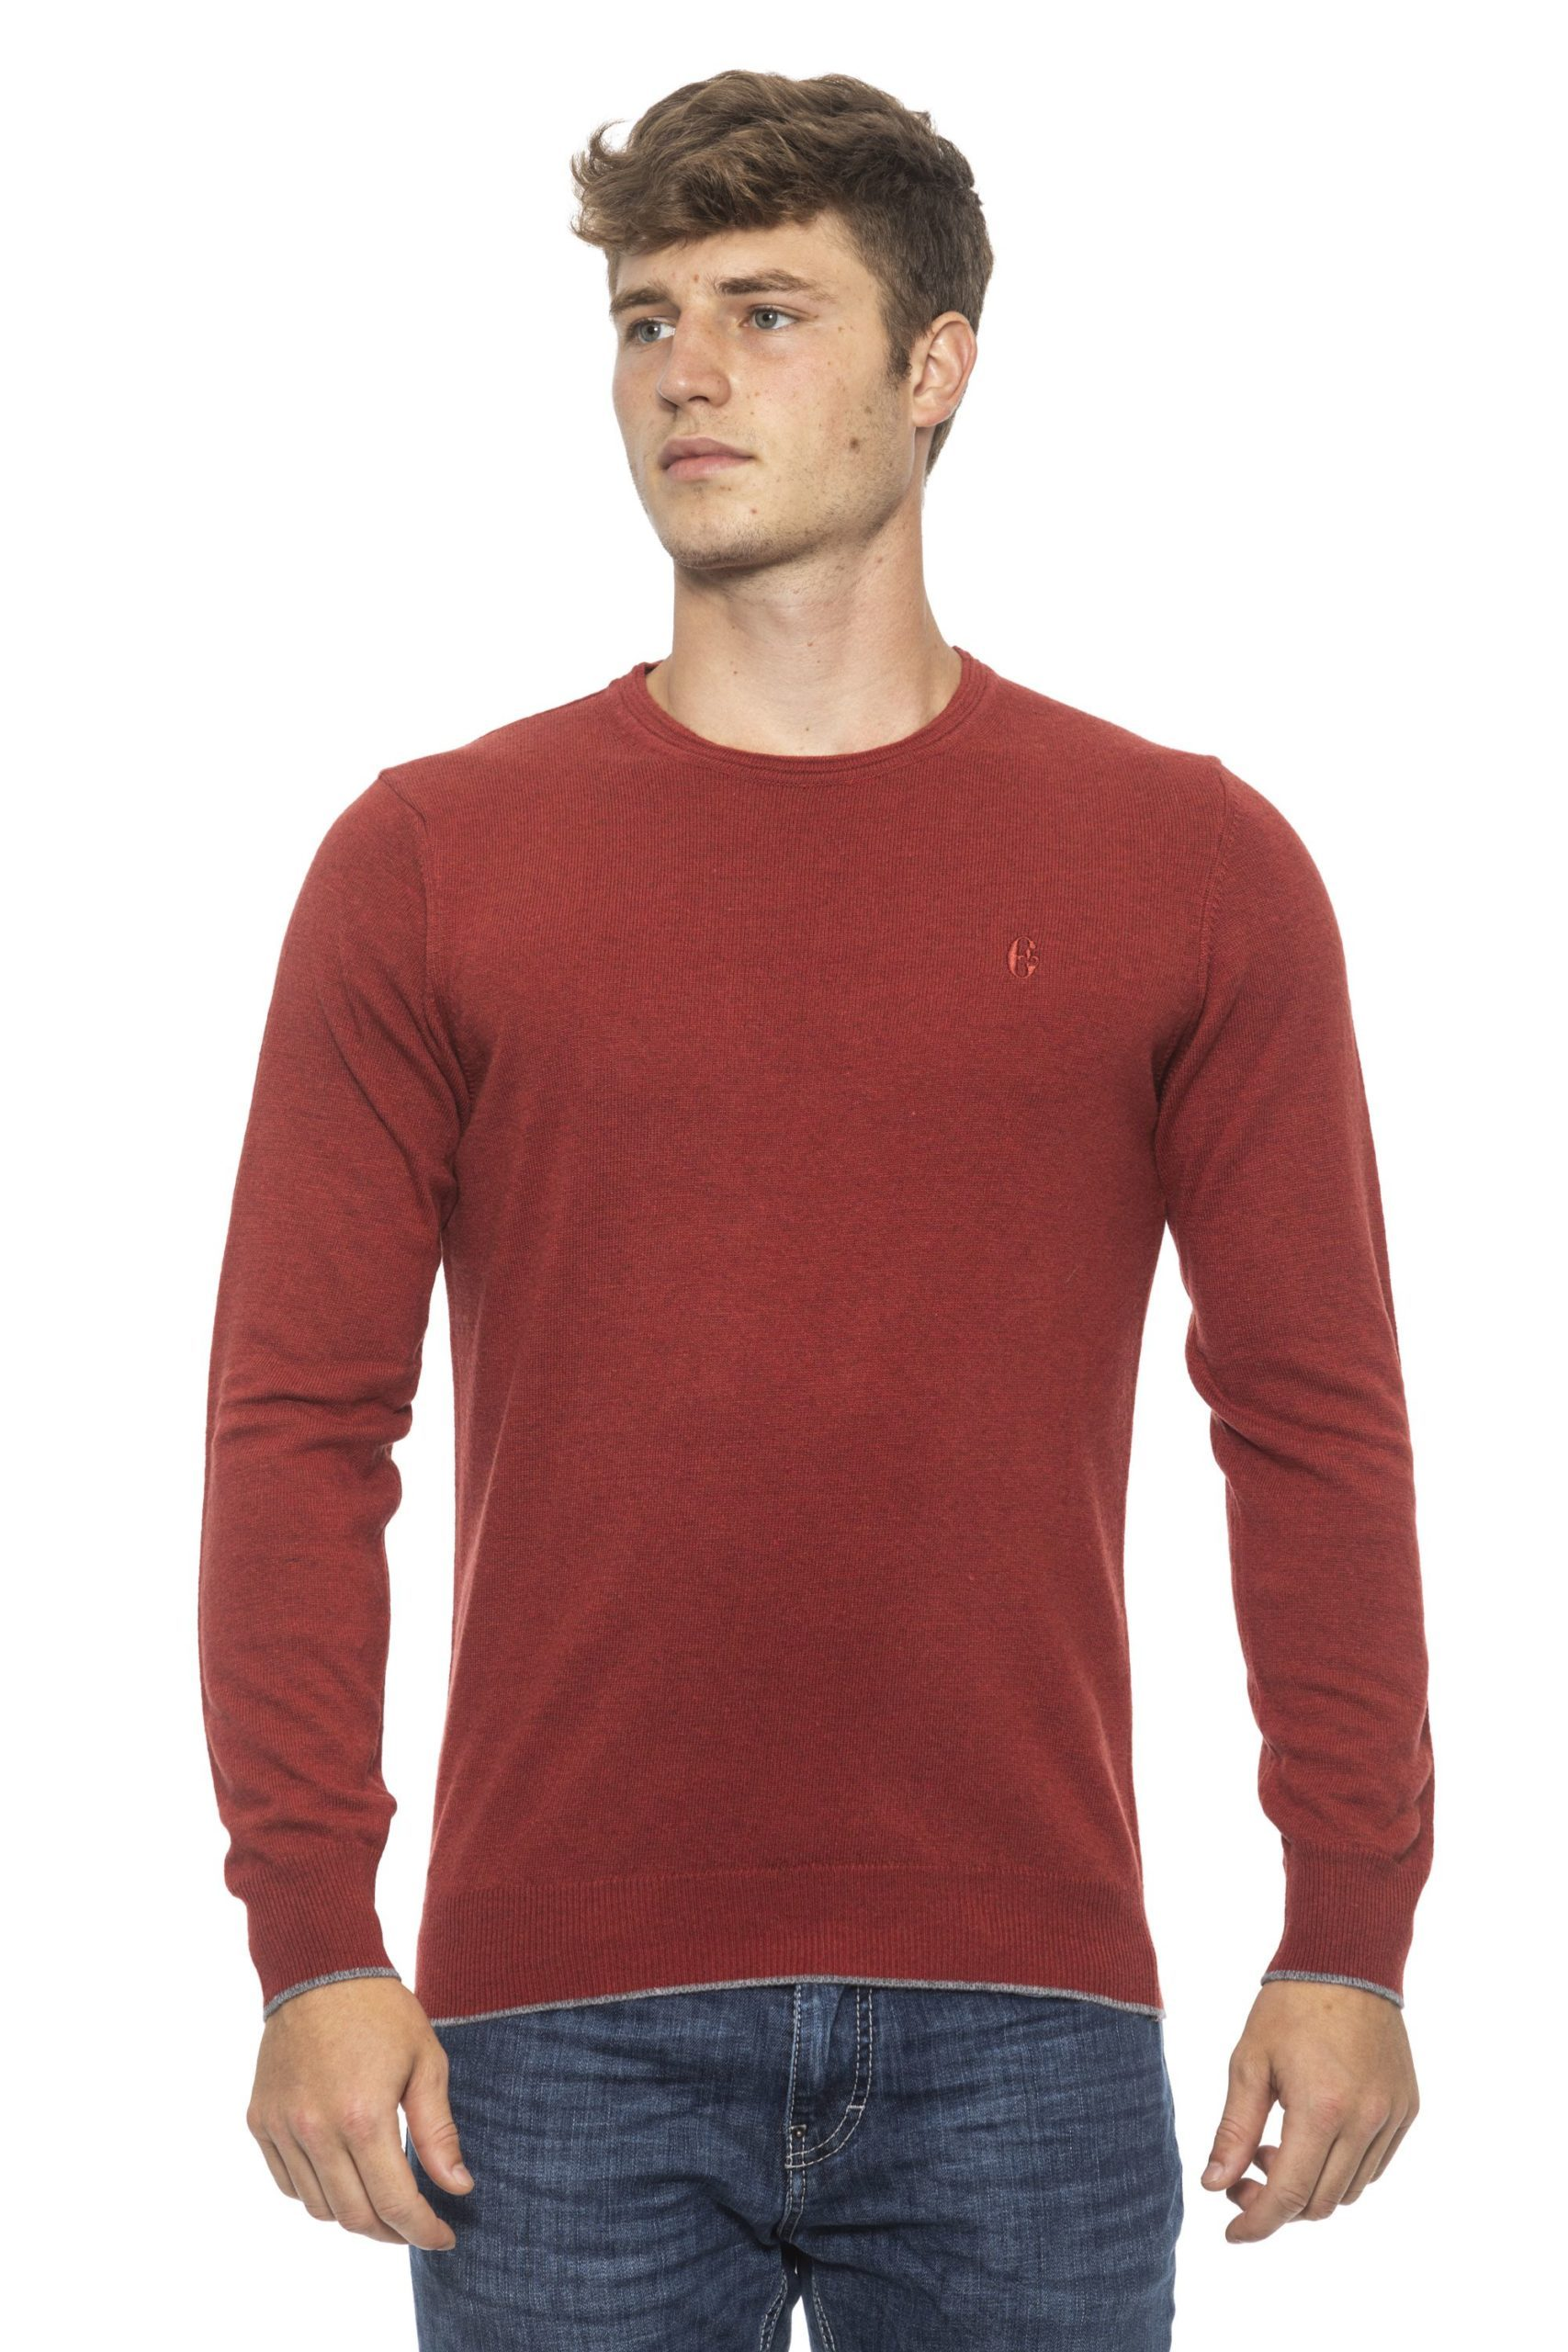 Conte of Florence Men's Sweater Red CO1272770 - S